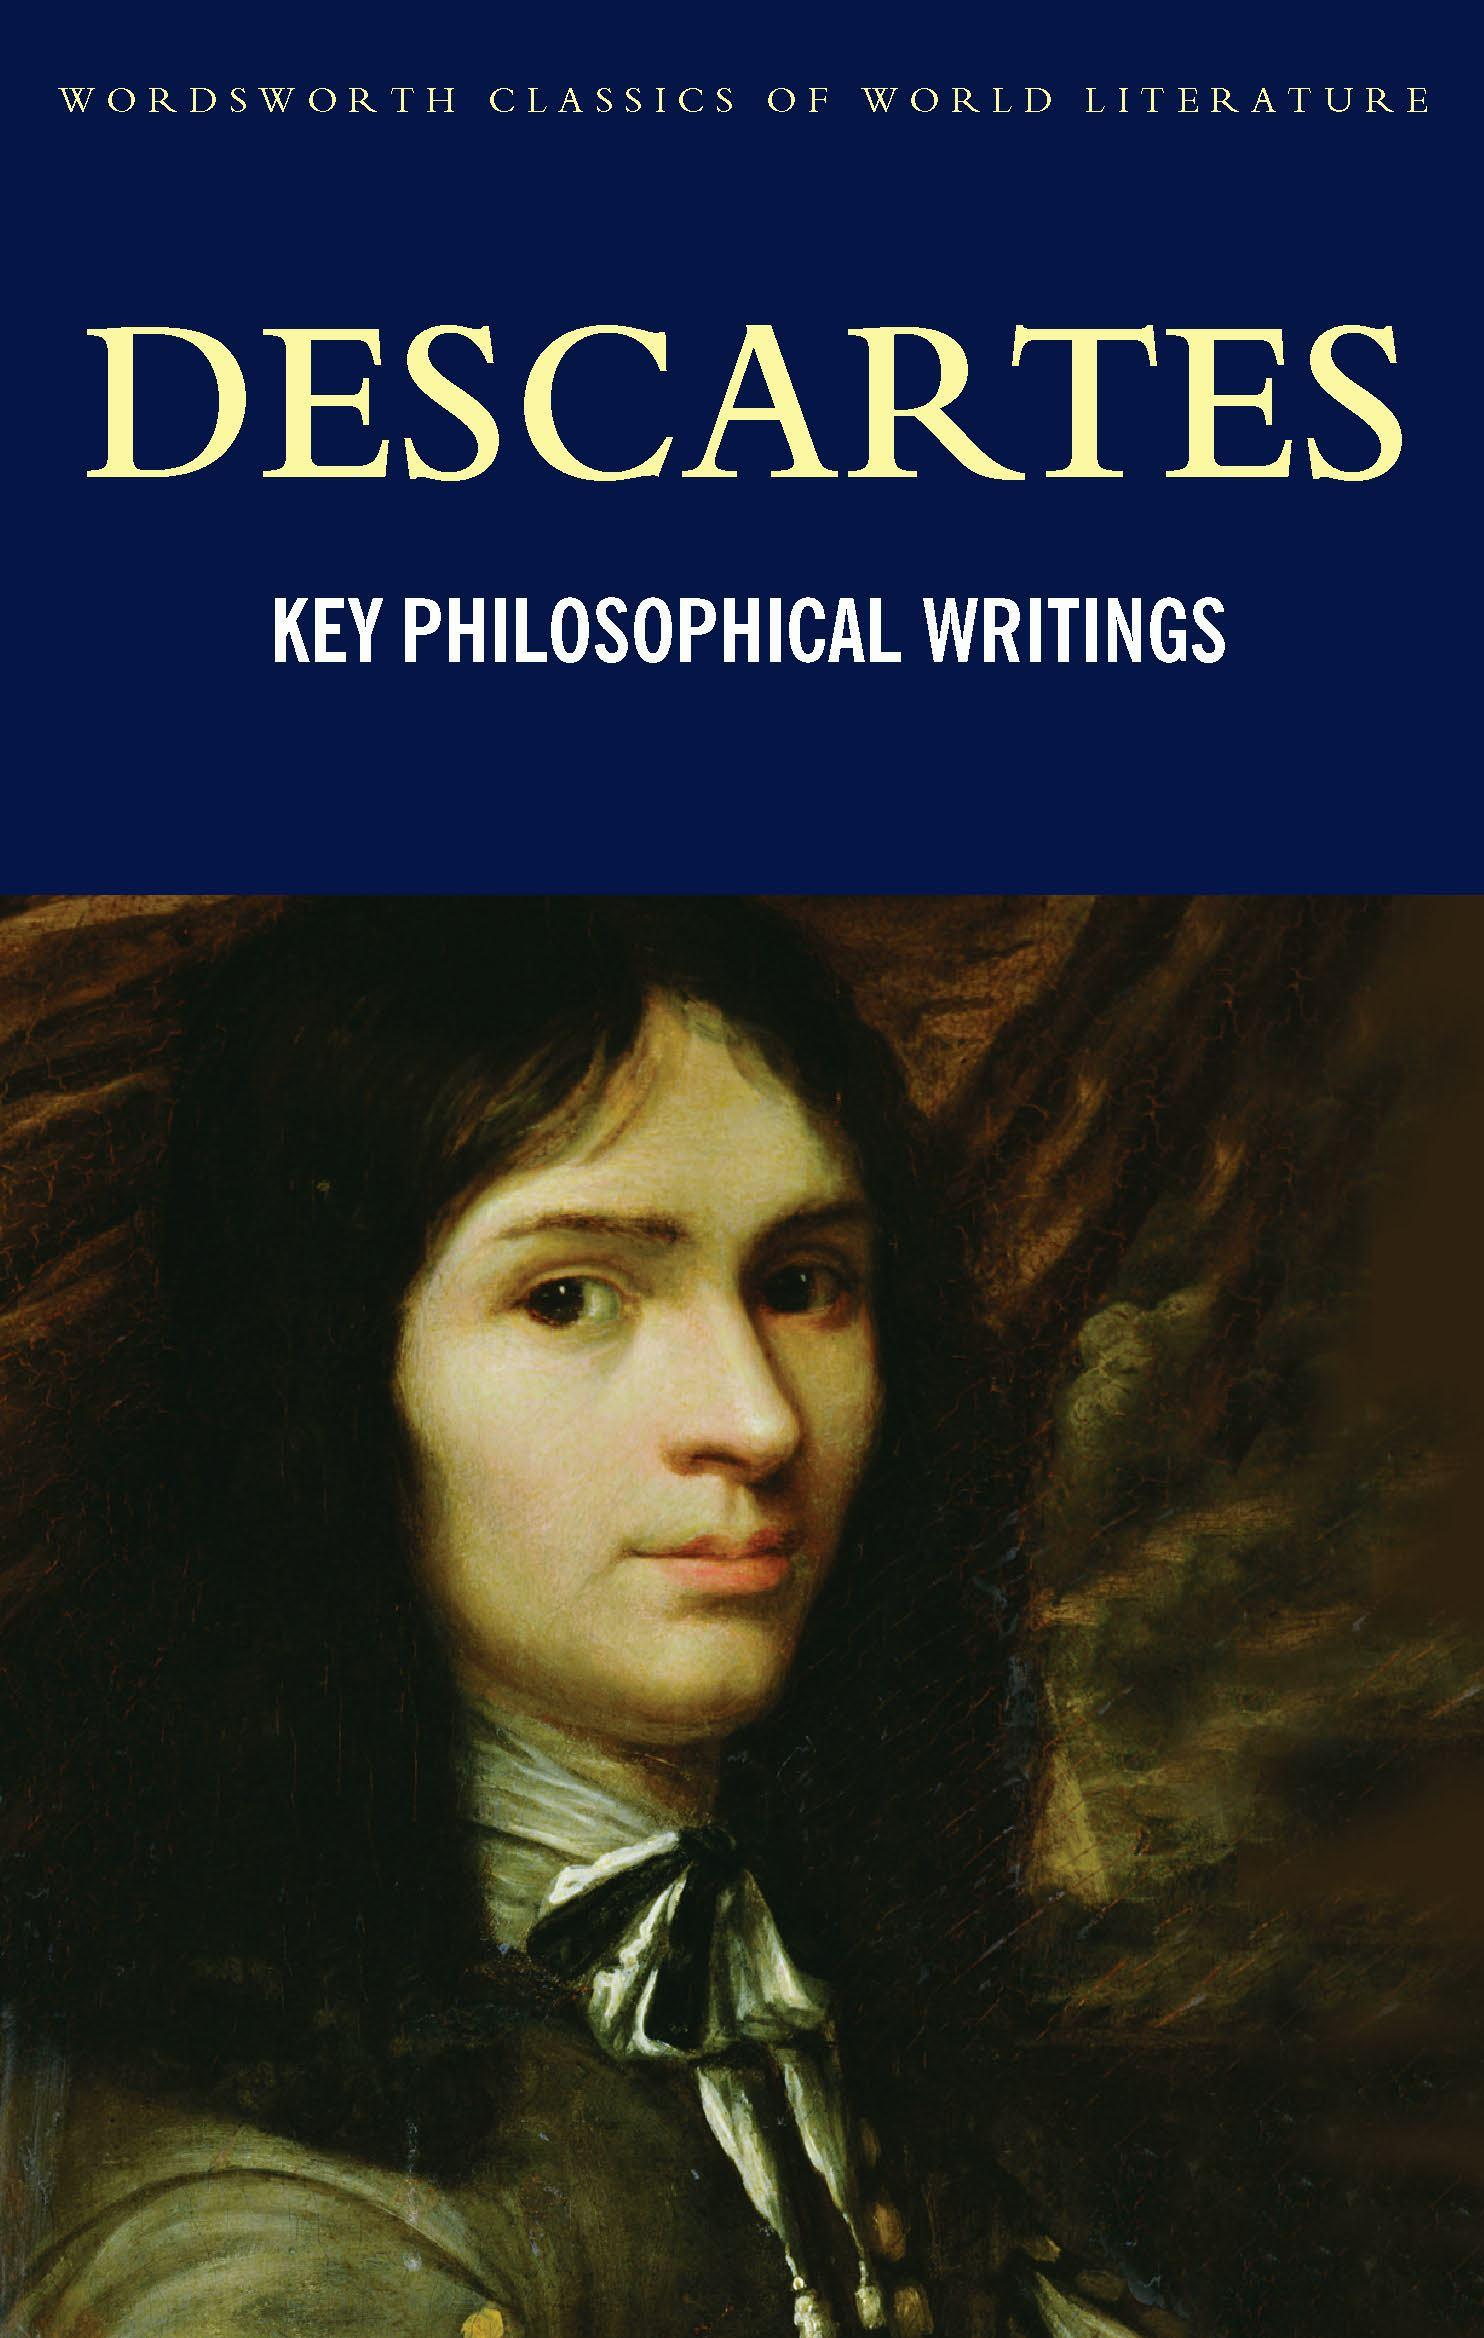 an analysis to a question why with descartes philosophy Philosophy can be practically defined as that type of organized, systematic intellectual endeavor in which questions are asked but not given answers that we can agree upon a broad area of exceptions would be logic, which is generally regarded as a branch of philosophy probably because it is the most important methodological tool of philosophy.